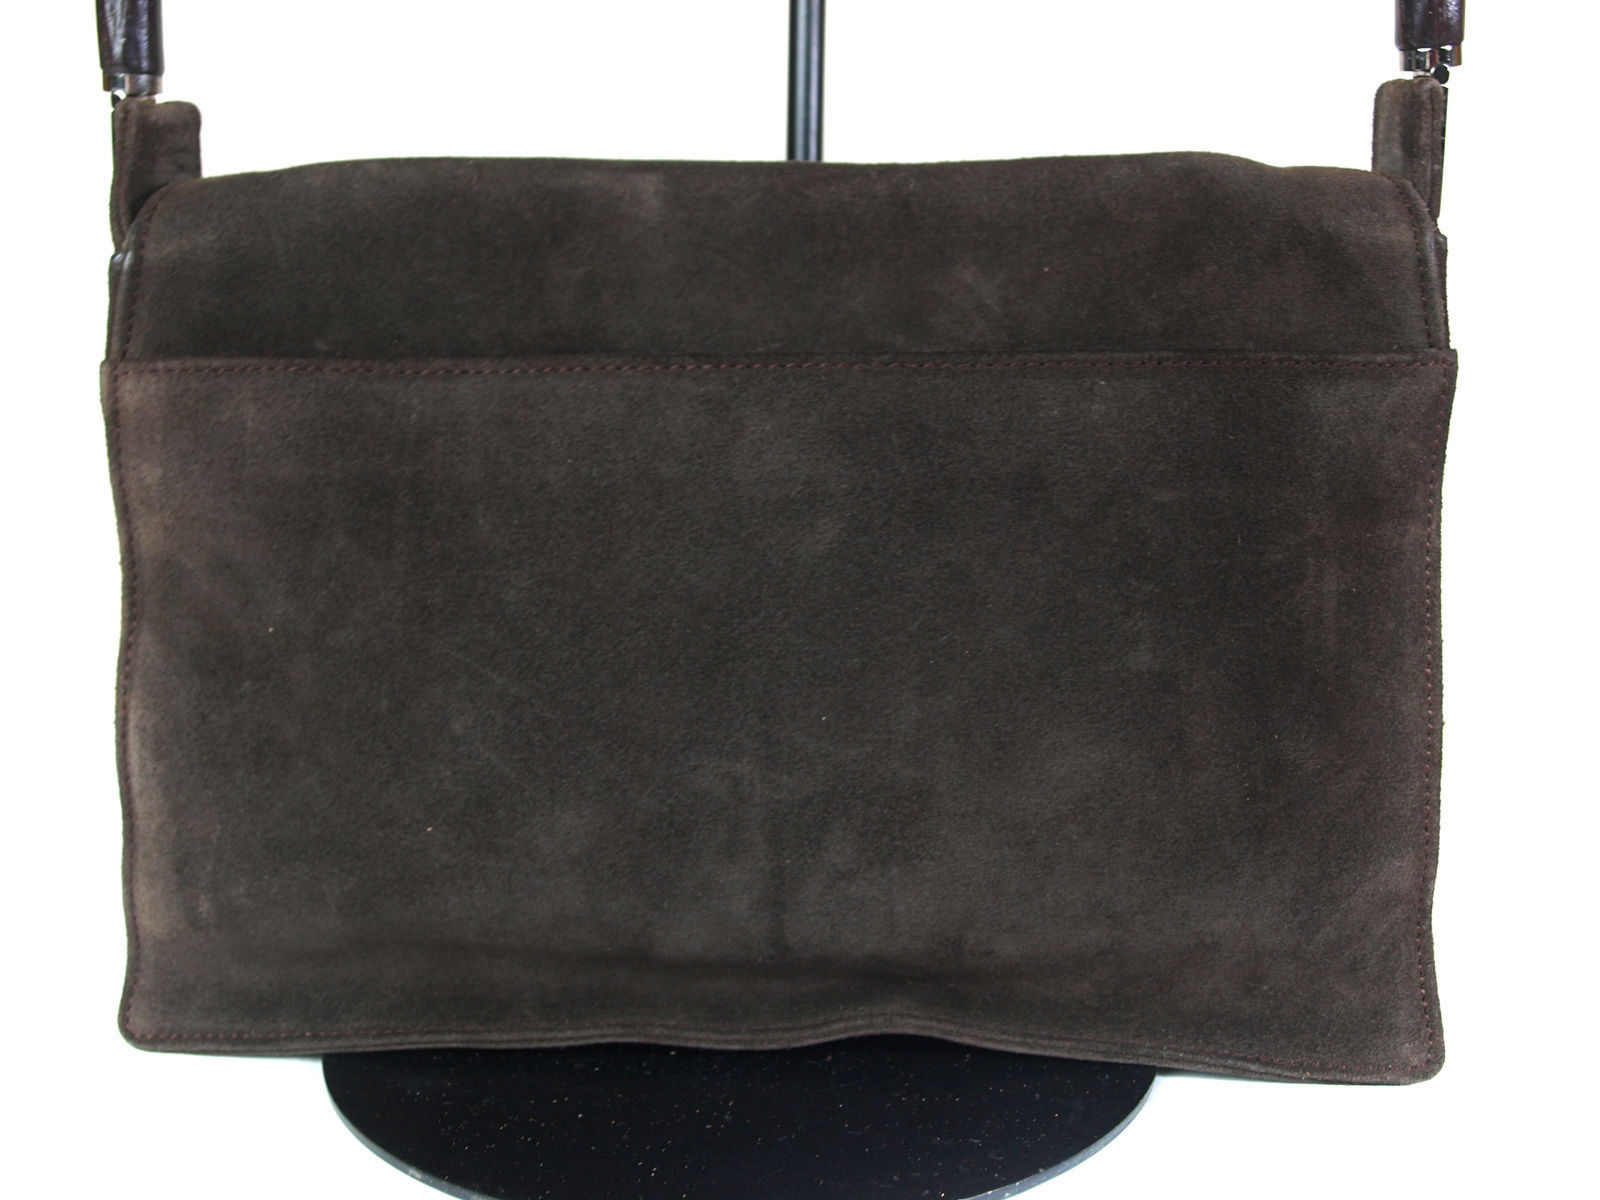 Authentic GUCCI Bamboo Suede Leather Dark Brown Shoulder Bag GS4235L